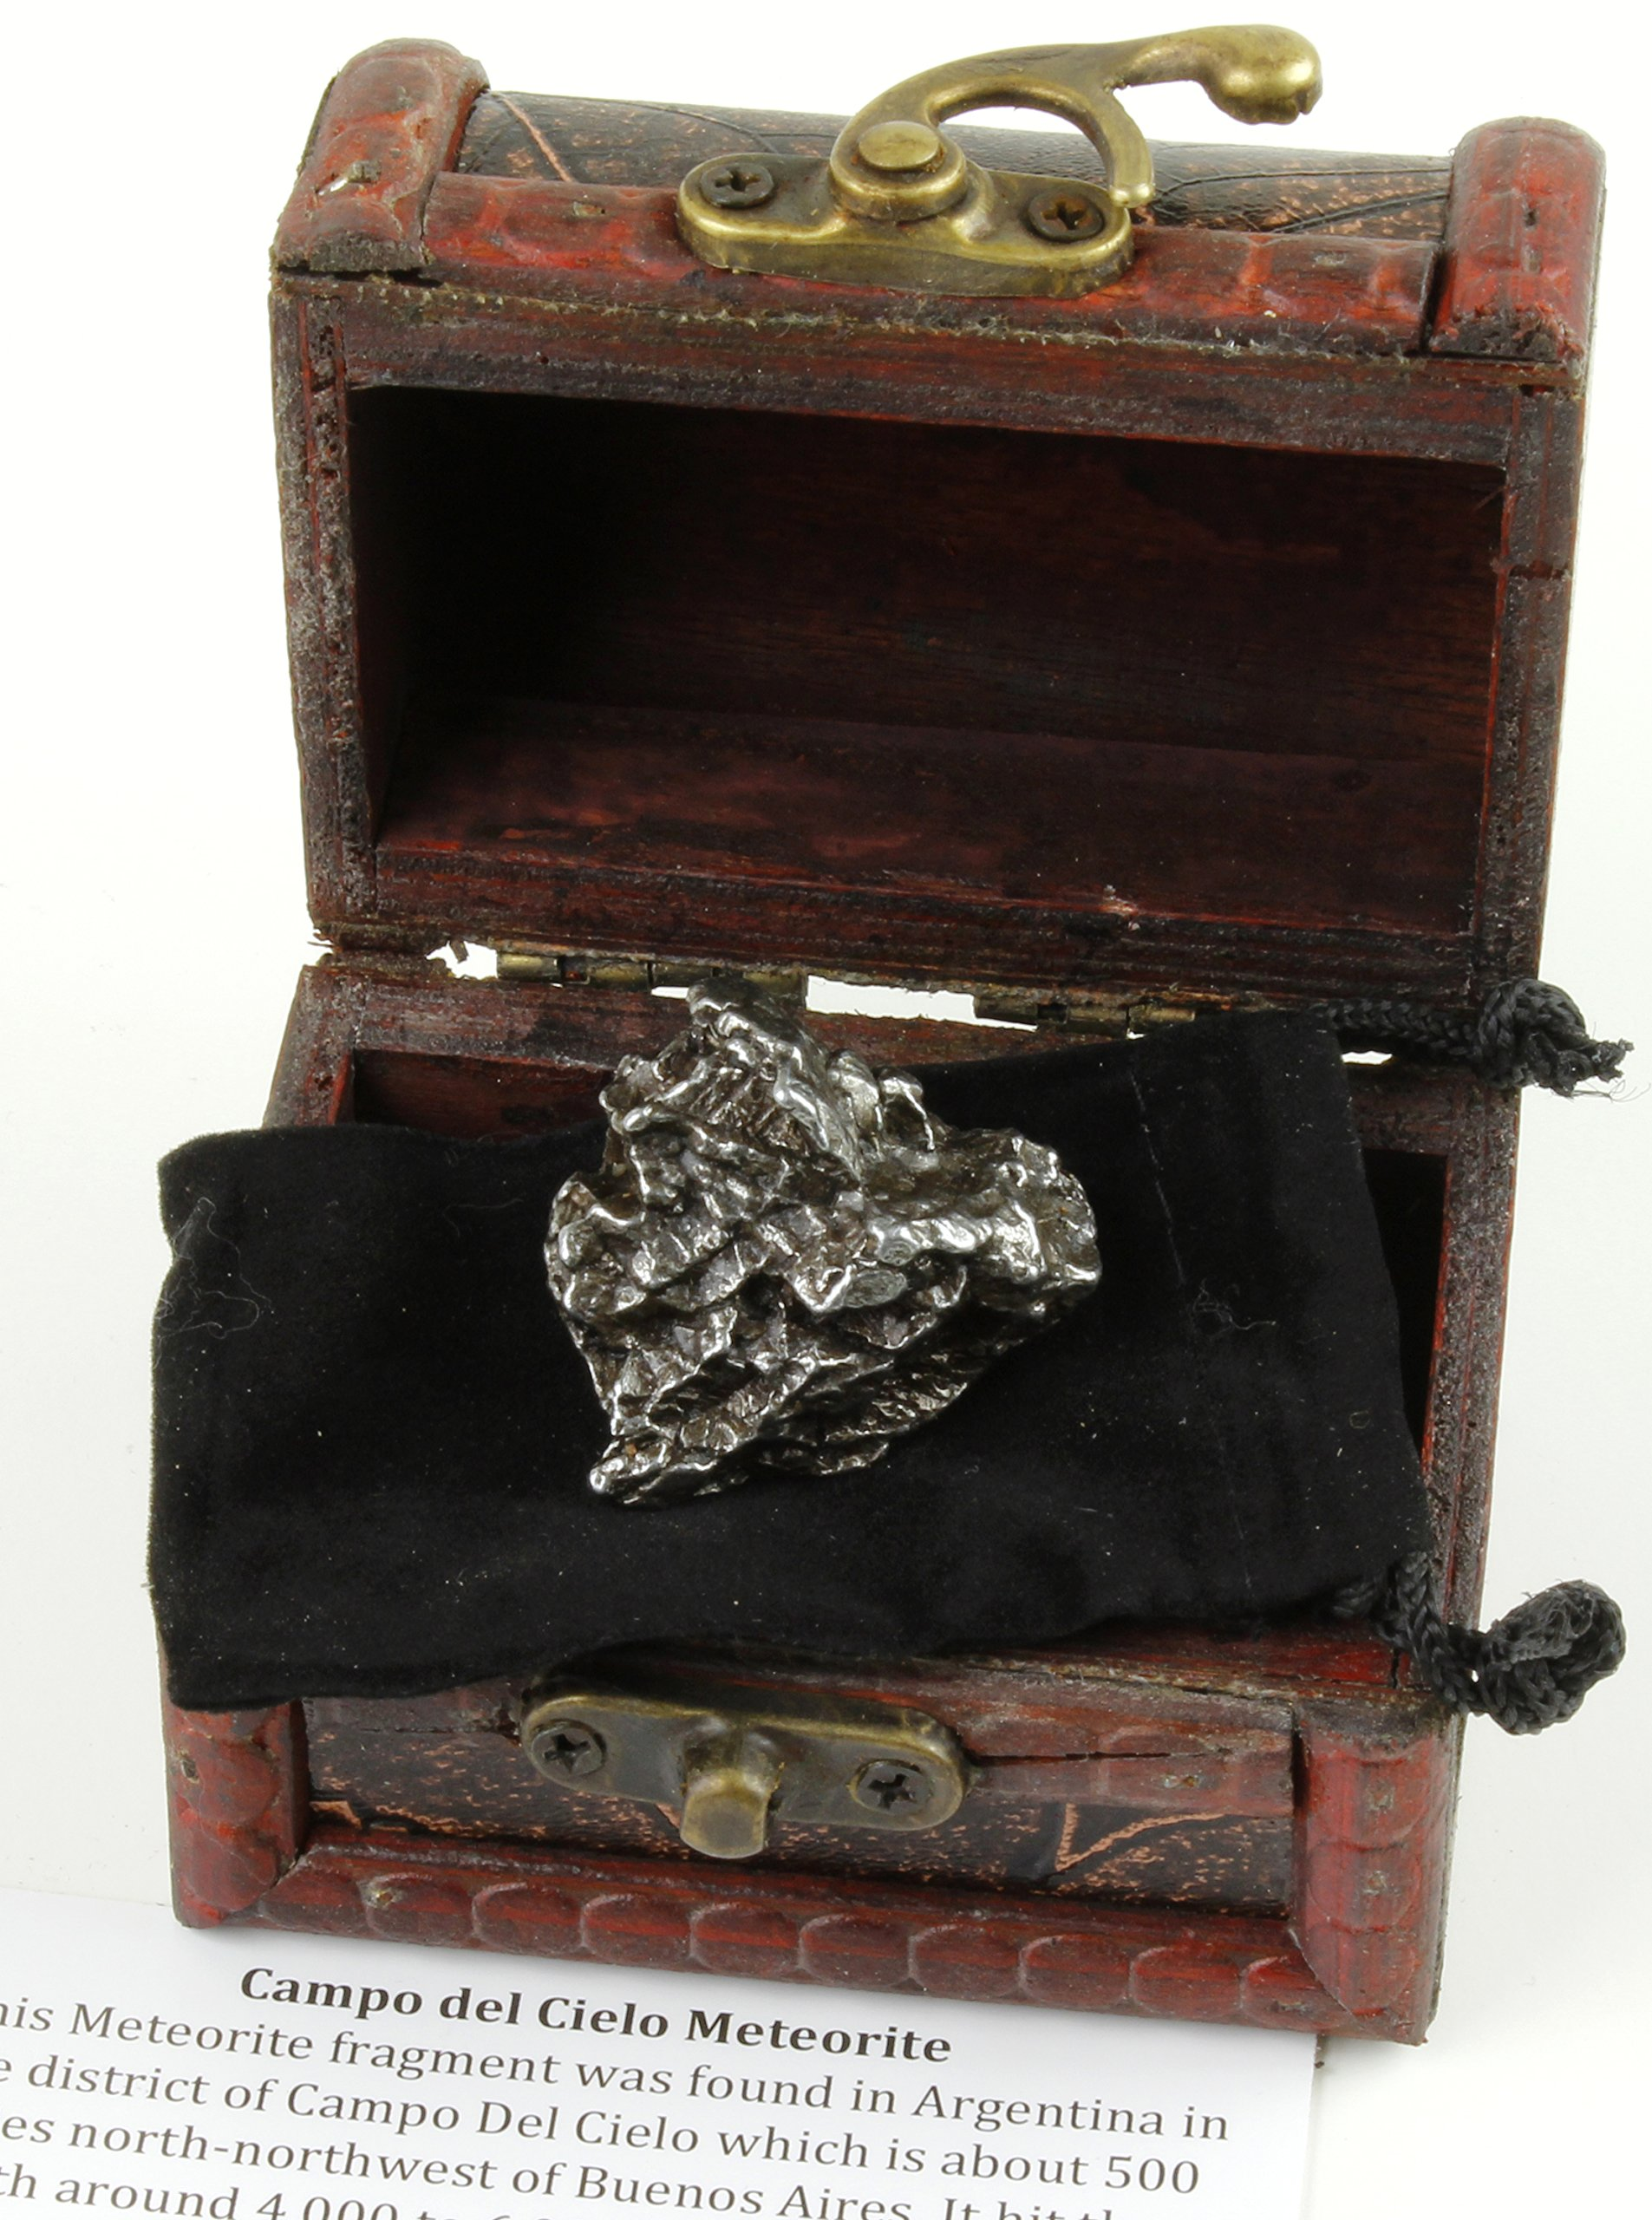 Dancing Bear Authentic Extra Large Massive 35-60 Grams Meteorite, Bonus Treasure Chest Box, Display Case, Velvet Pouch, Education Card & Certificate of Authenticity, Campo Del Cielo, Argentina, Brand